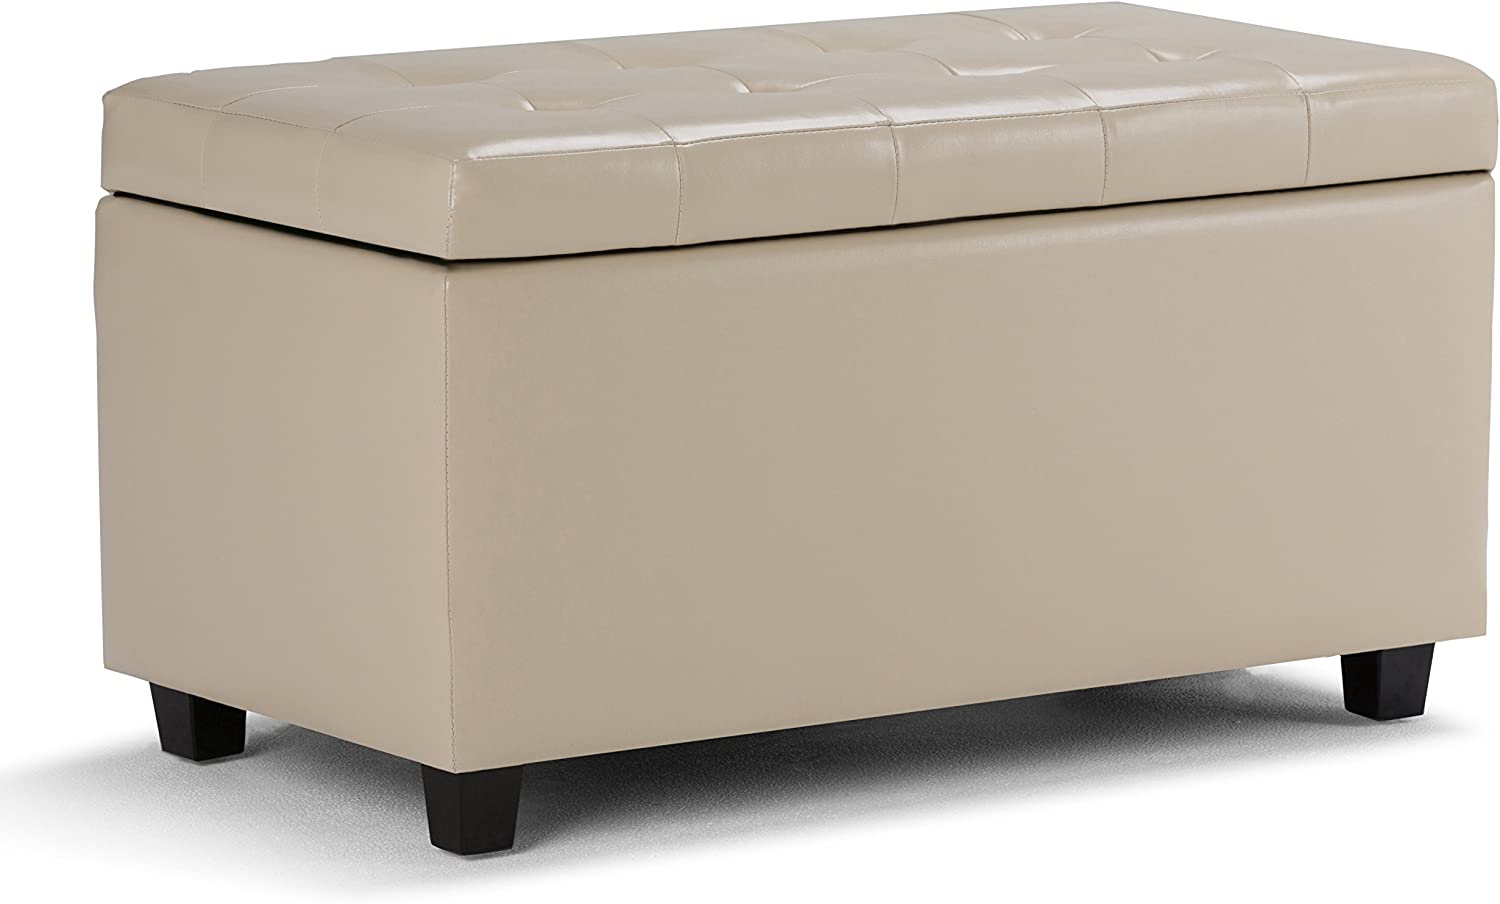 SIMPLIHOME Cosmopolitan 34 inch Wide Rectangle Lift Top Storage Ottoman in Upholstered Satin Upholstered Cream Tufted Faux Leather, Footrest Stool, Coffee Table, Living Room, Bedroom and Kids Room